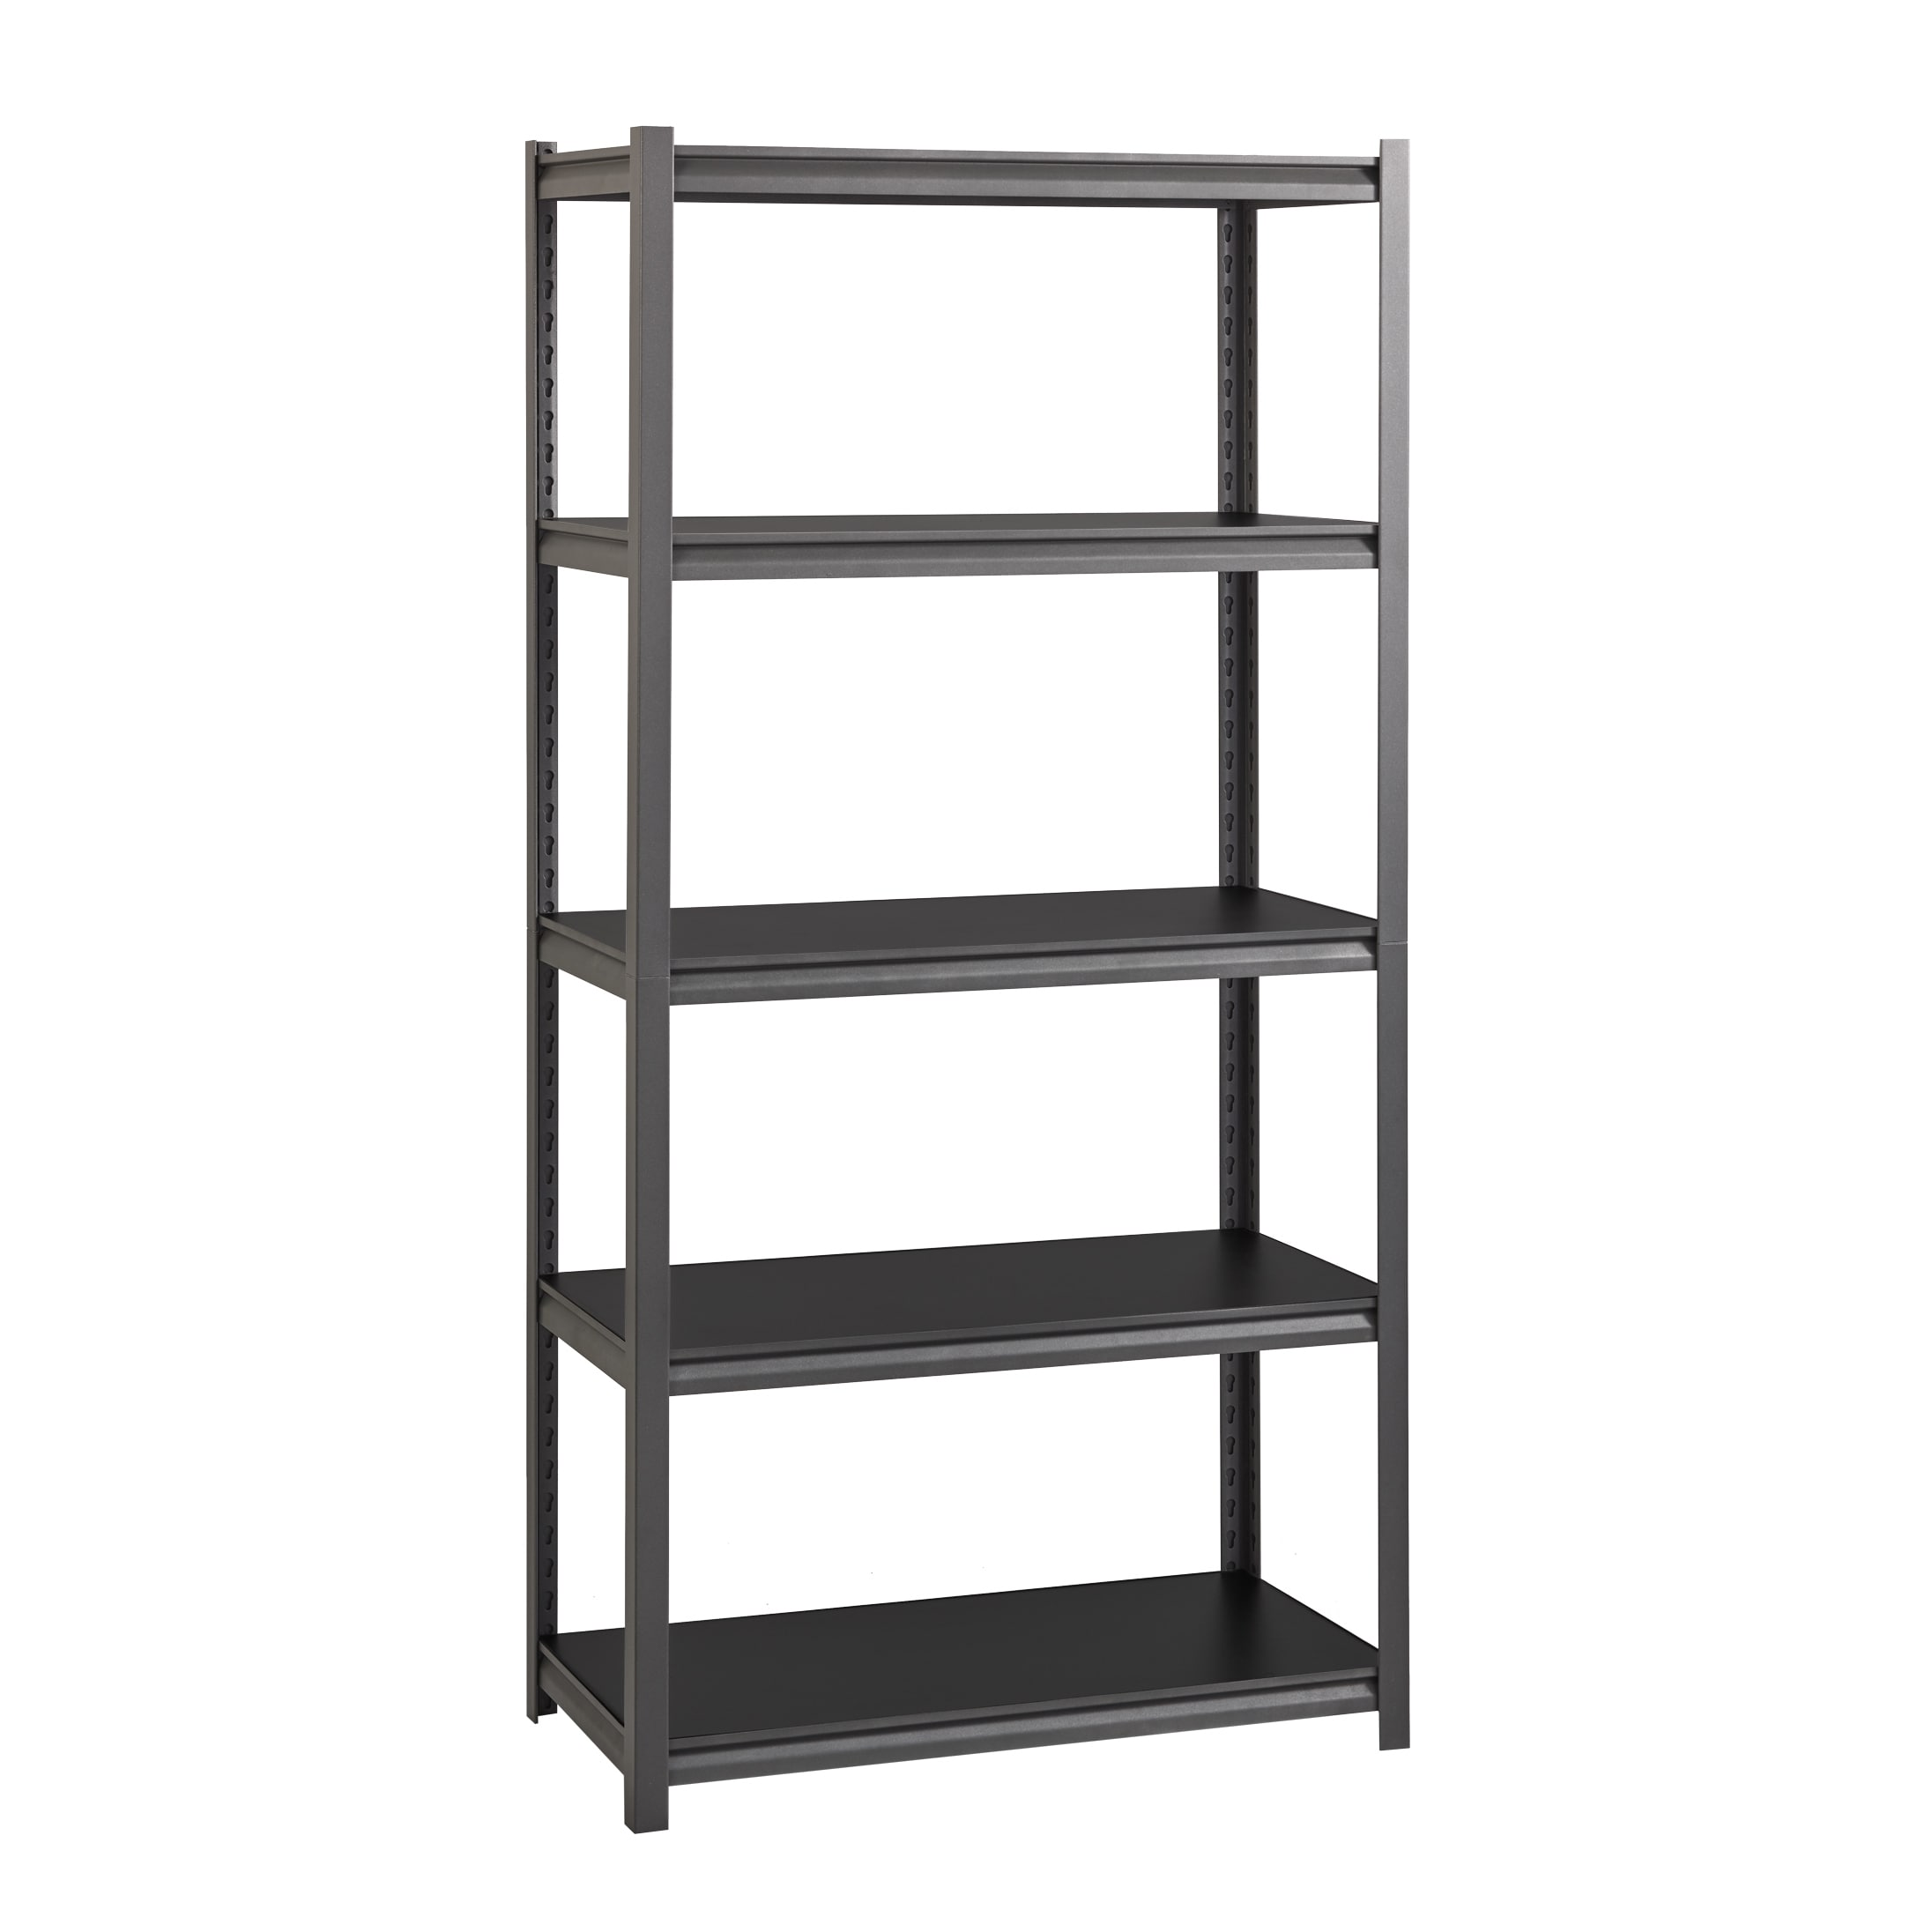 Iron Horse Gunmetal 3 200 Lb Shelving W Concealed Rivets On Sale Overstock 13102305